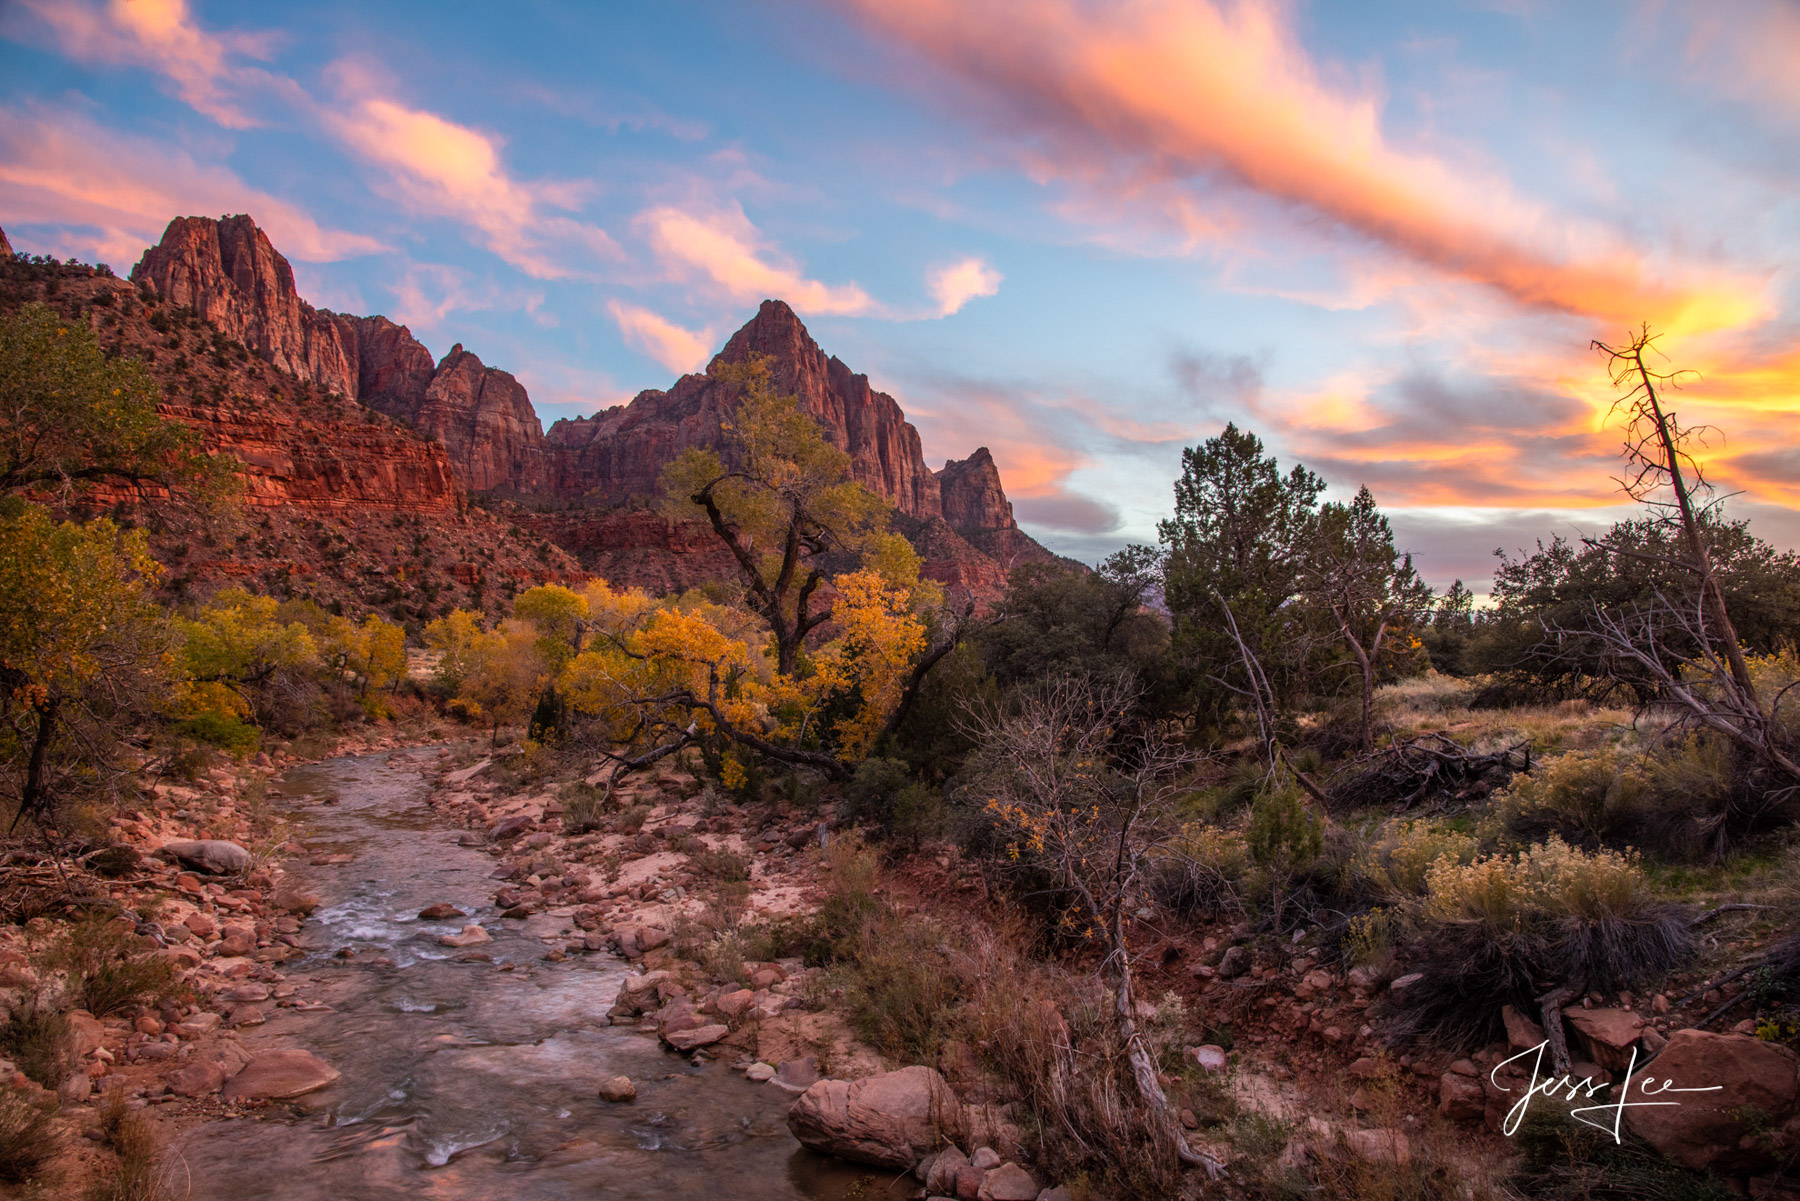 Zion Red Rocks Country in the American Southwest. Limited Edition of 50 Exclusive high-resolution Museum Quality Fine Art Photo...